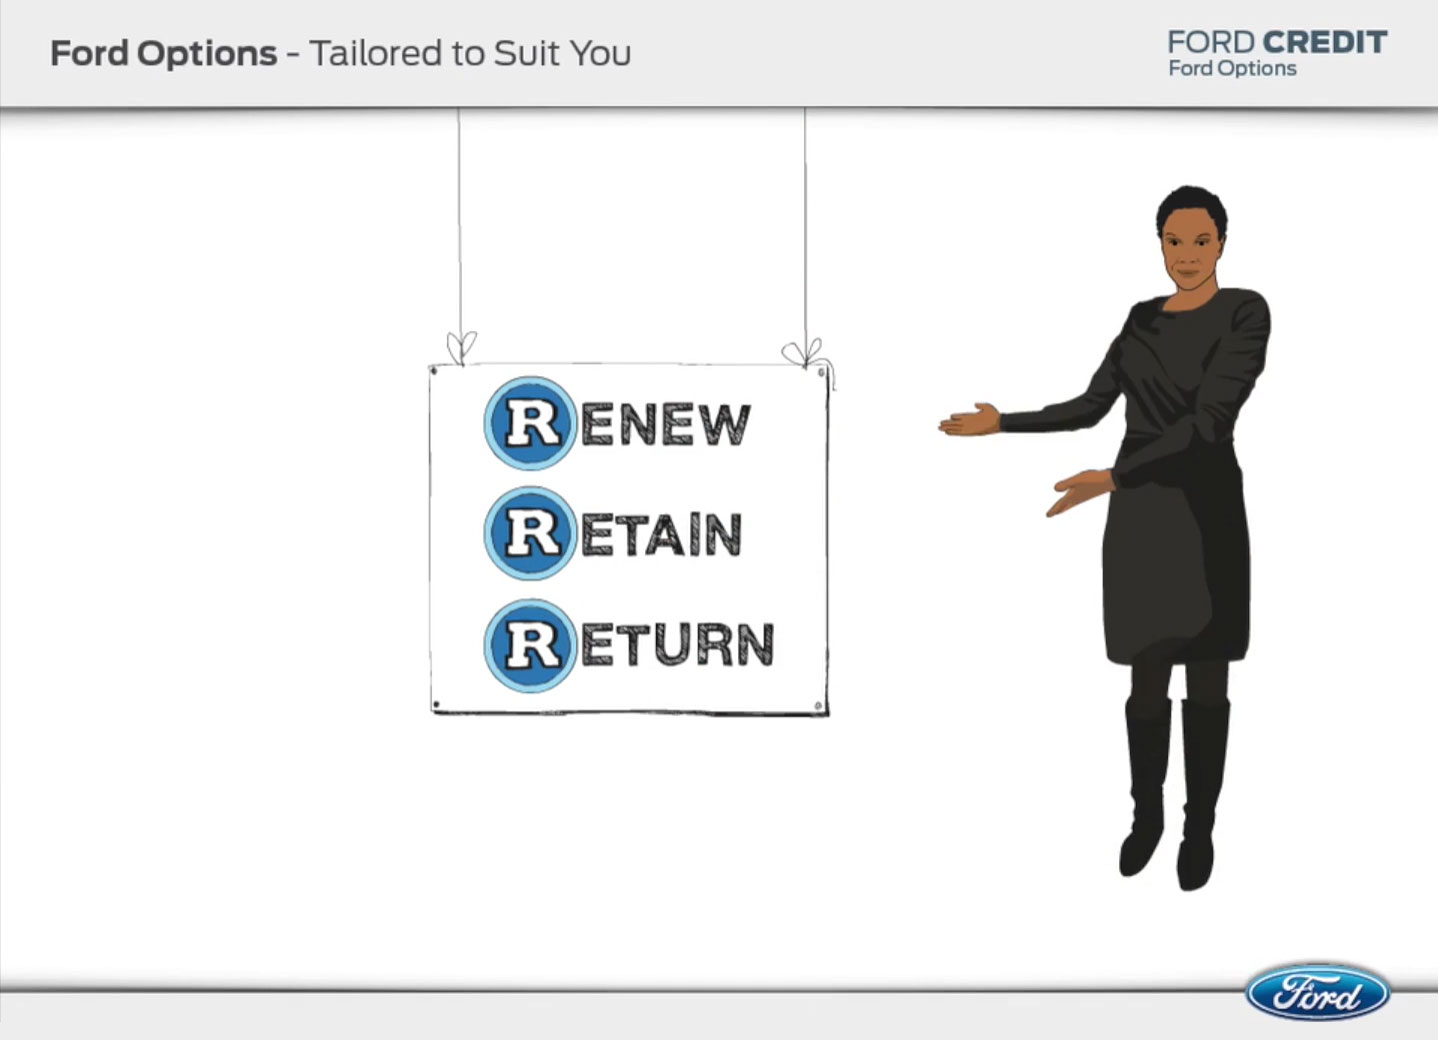 renew, retain and return - How it works